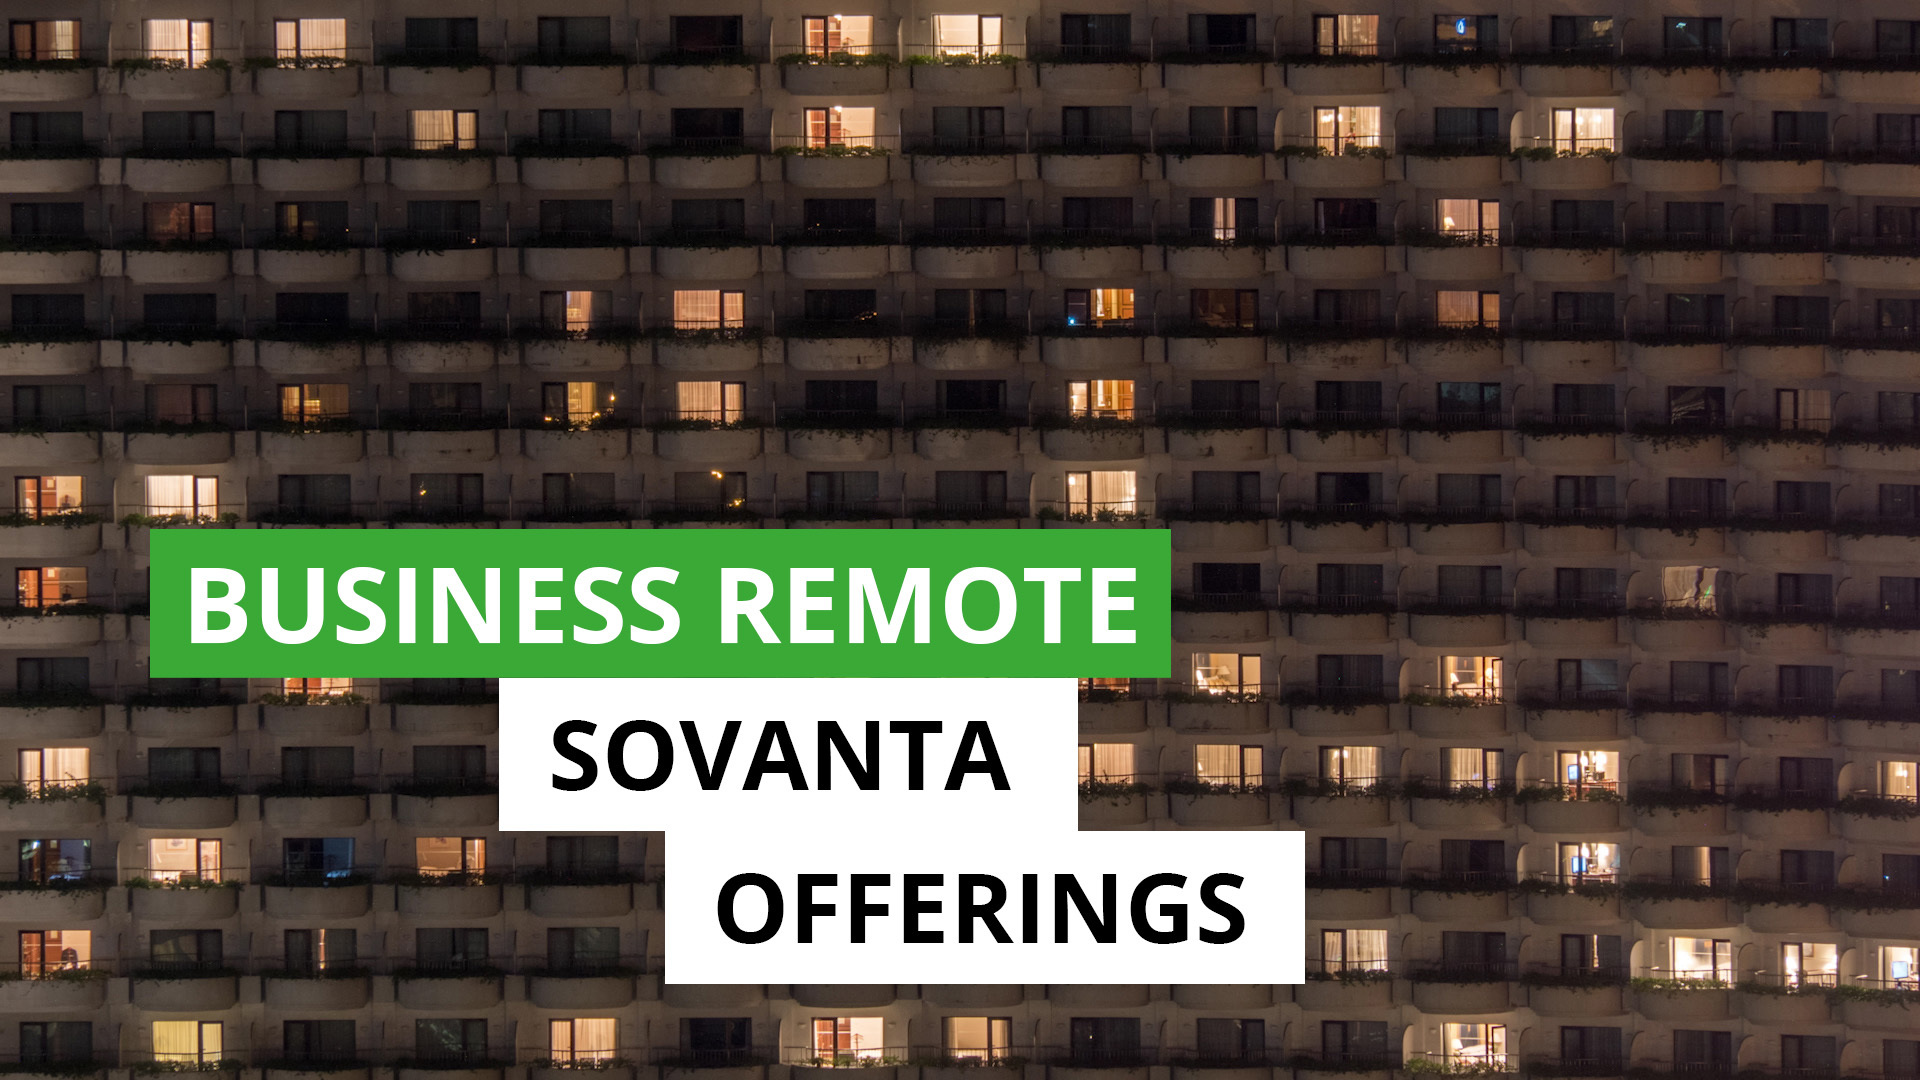 business-remote_sovanta-offerings_video-001